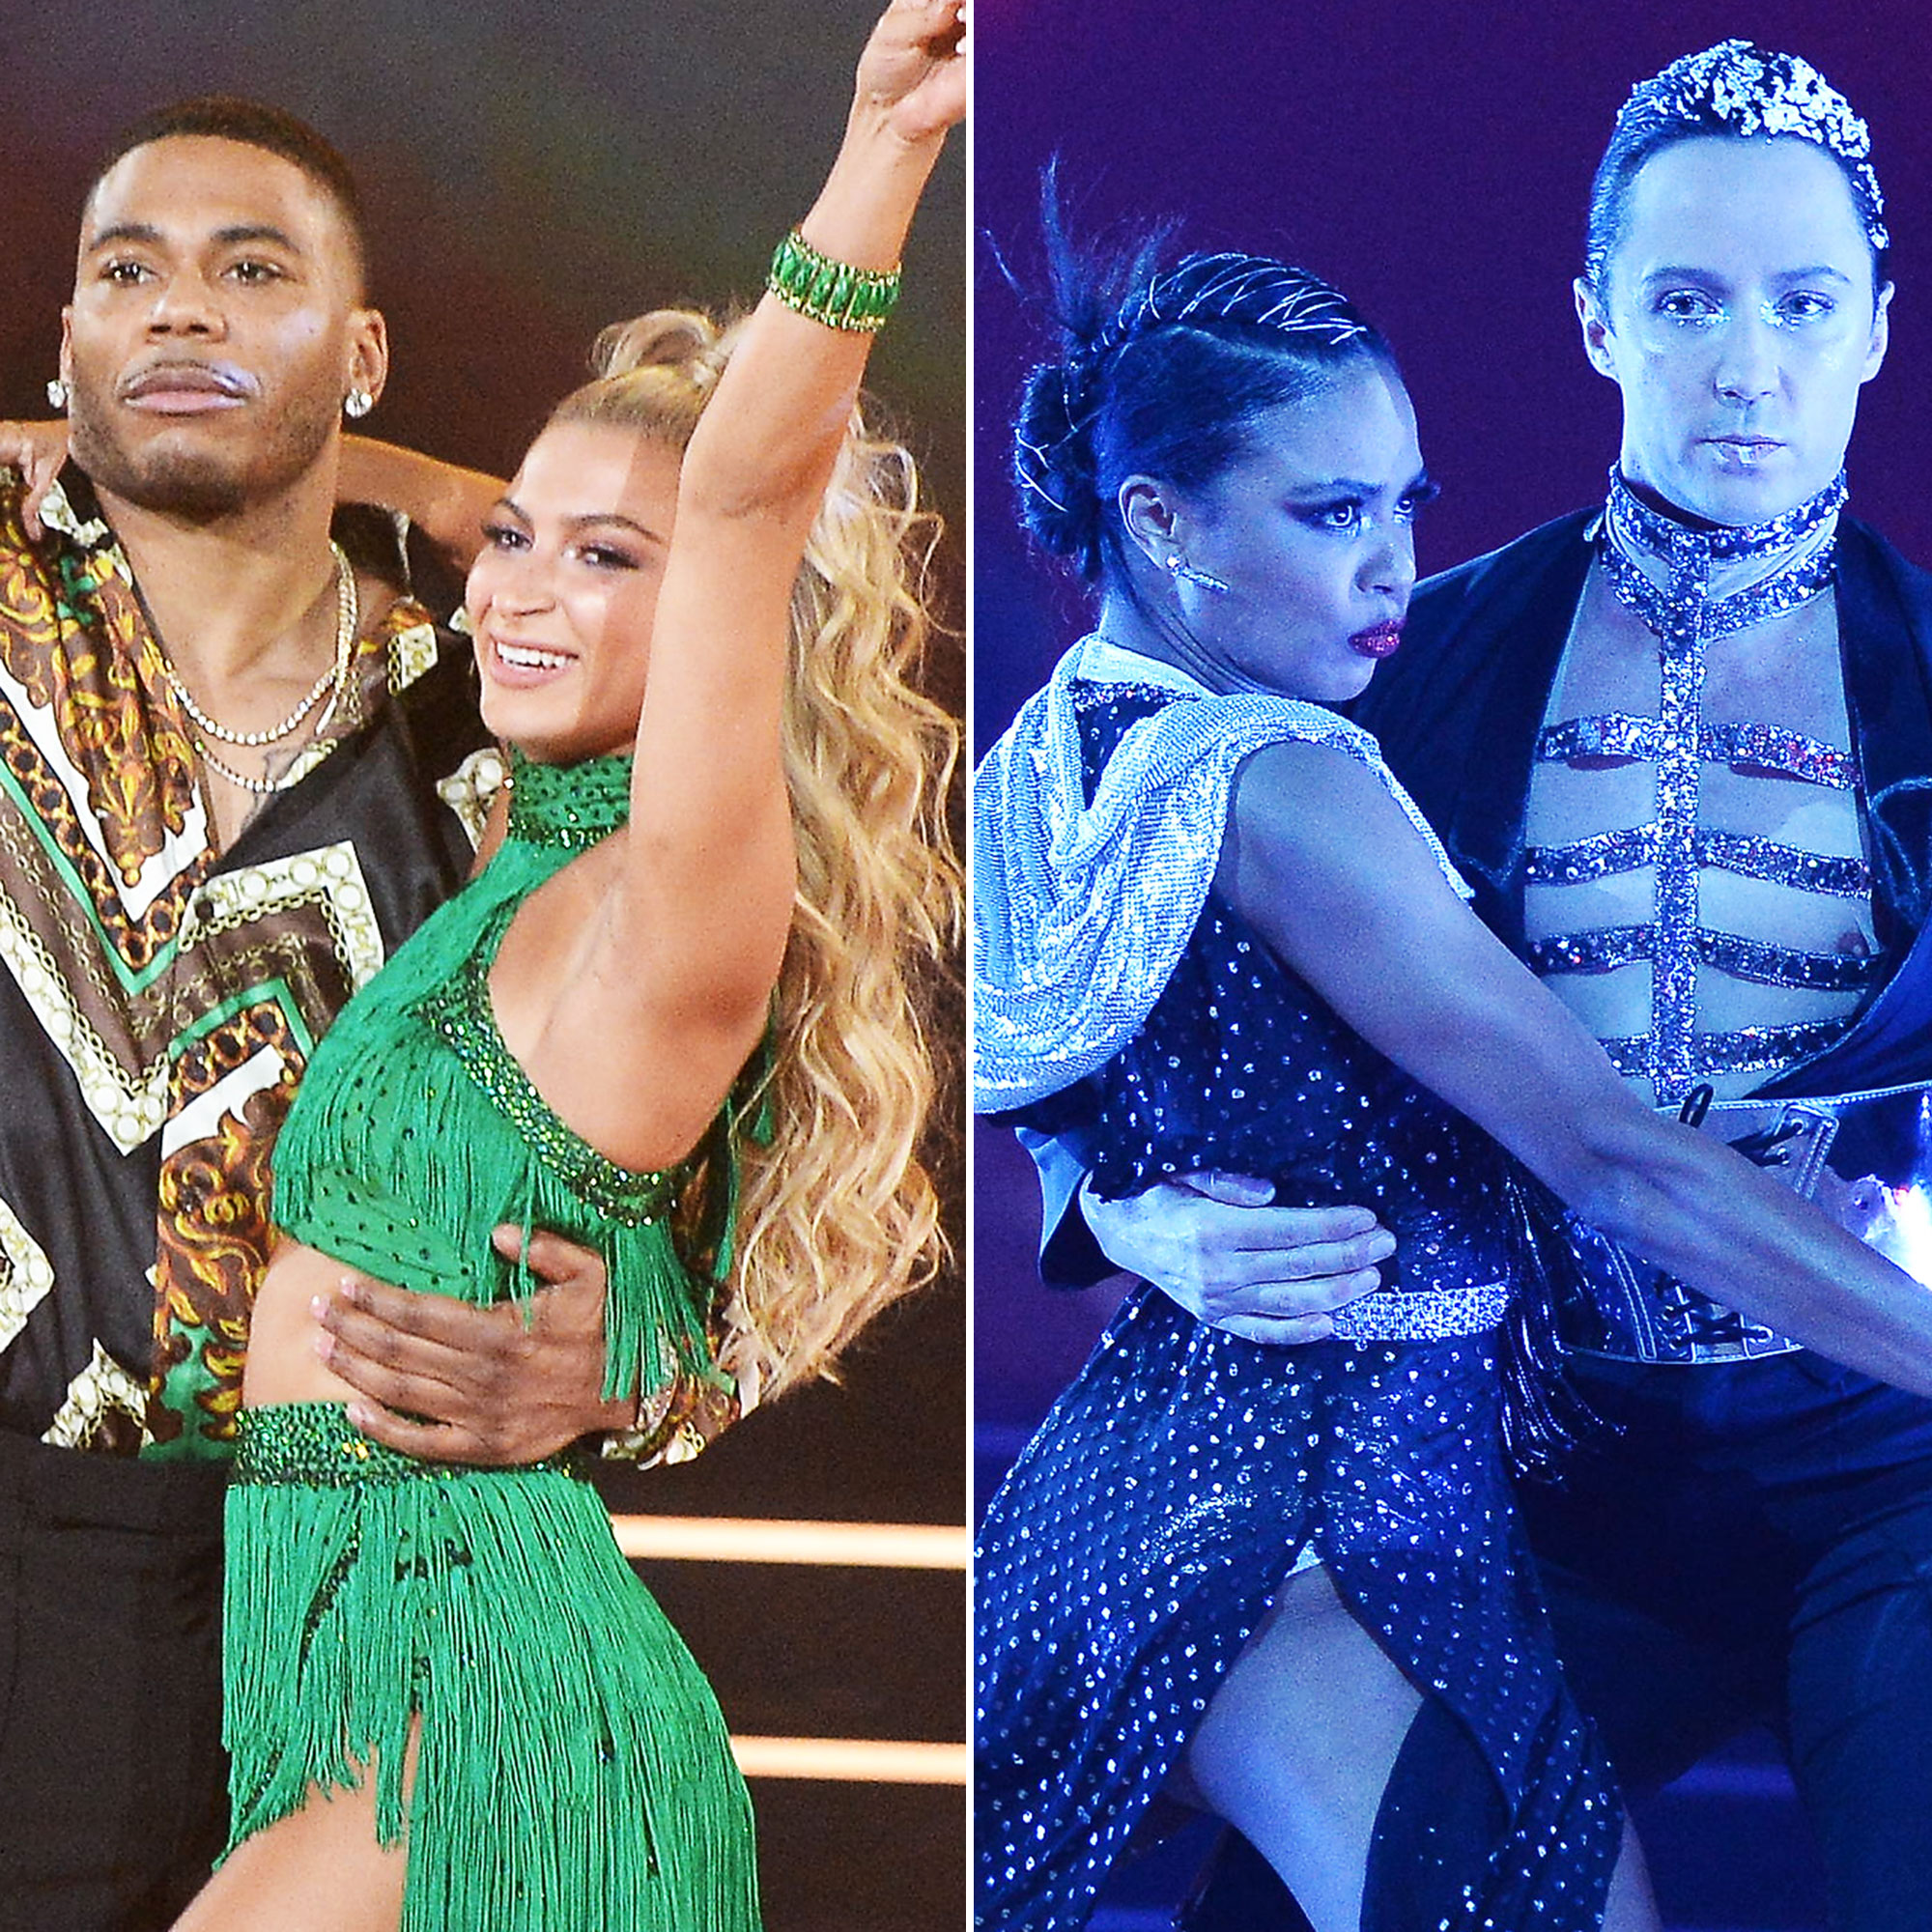 Weir Christmas Party 2020 Dancing With the Stars' Nelly, Johnny Weir Call Out 'Harsh' Judging